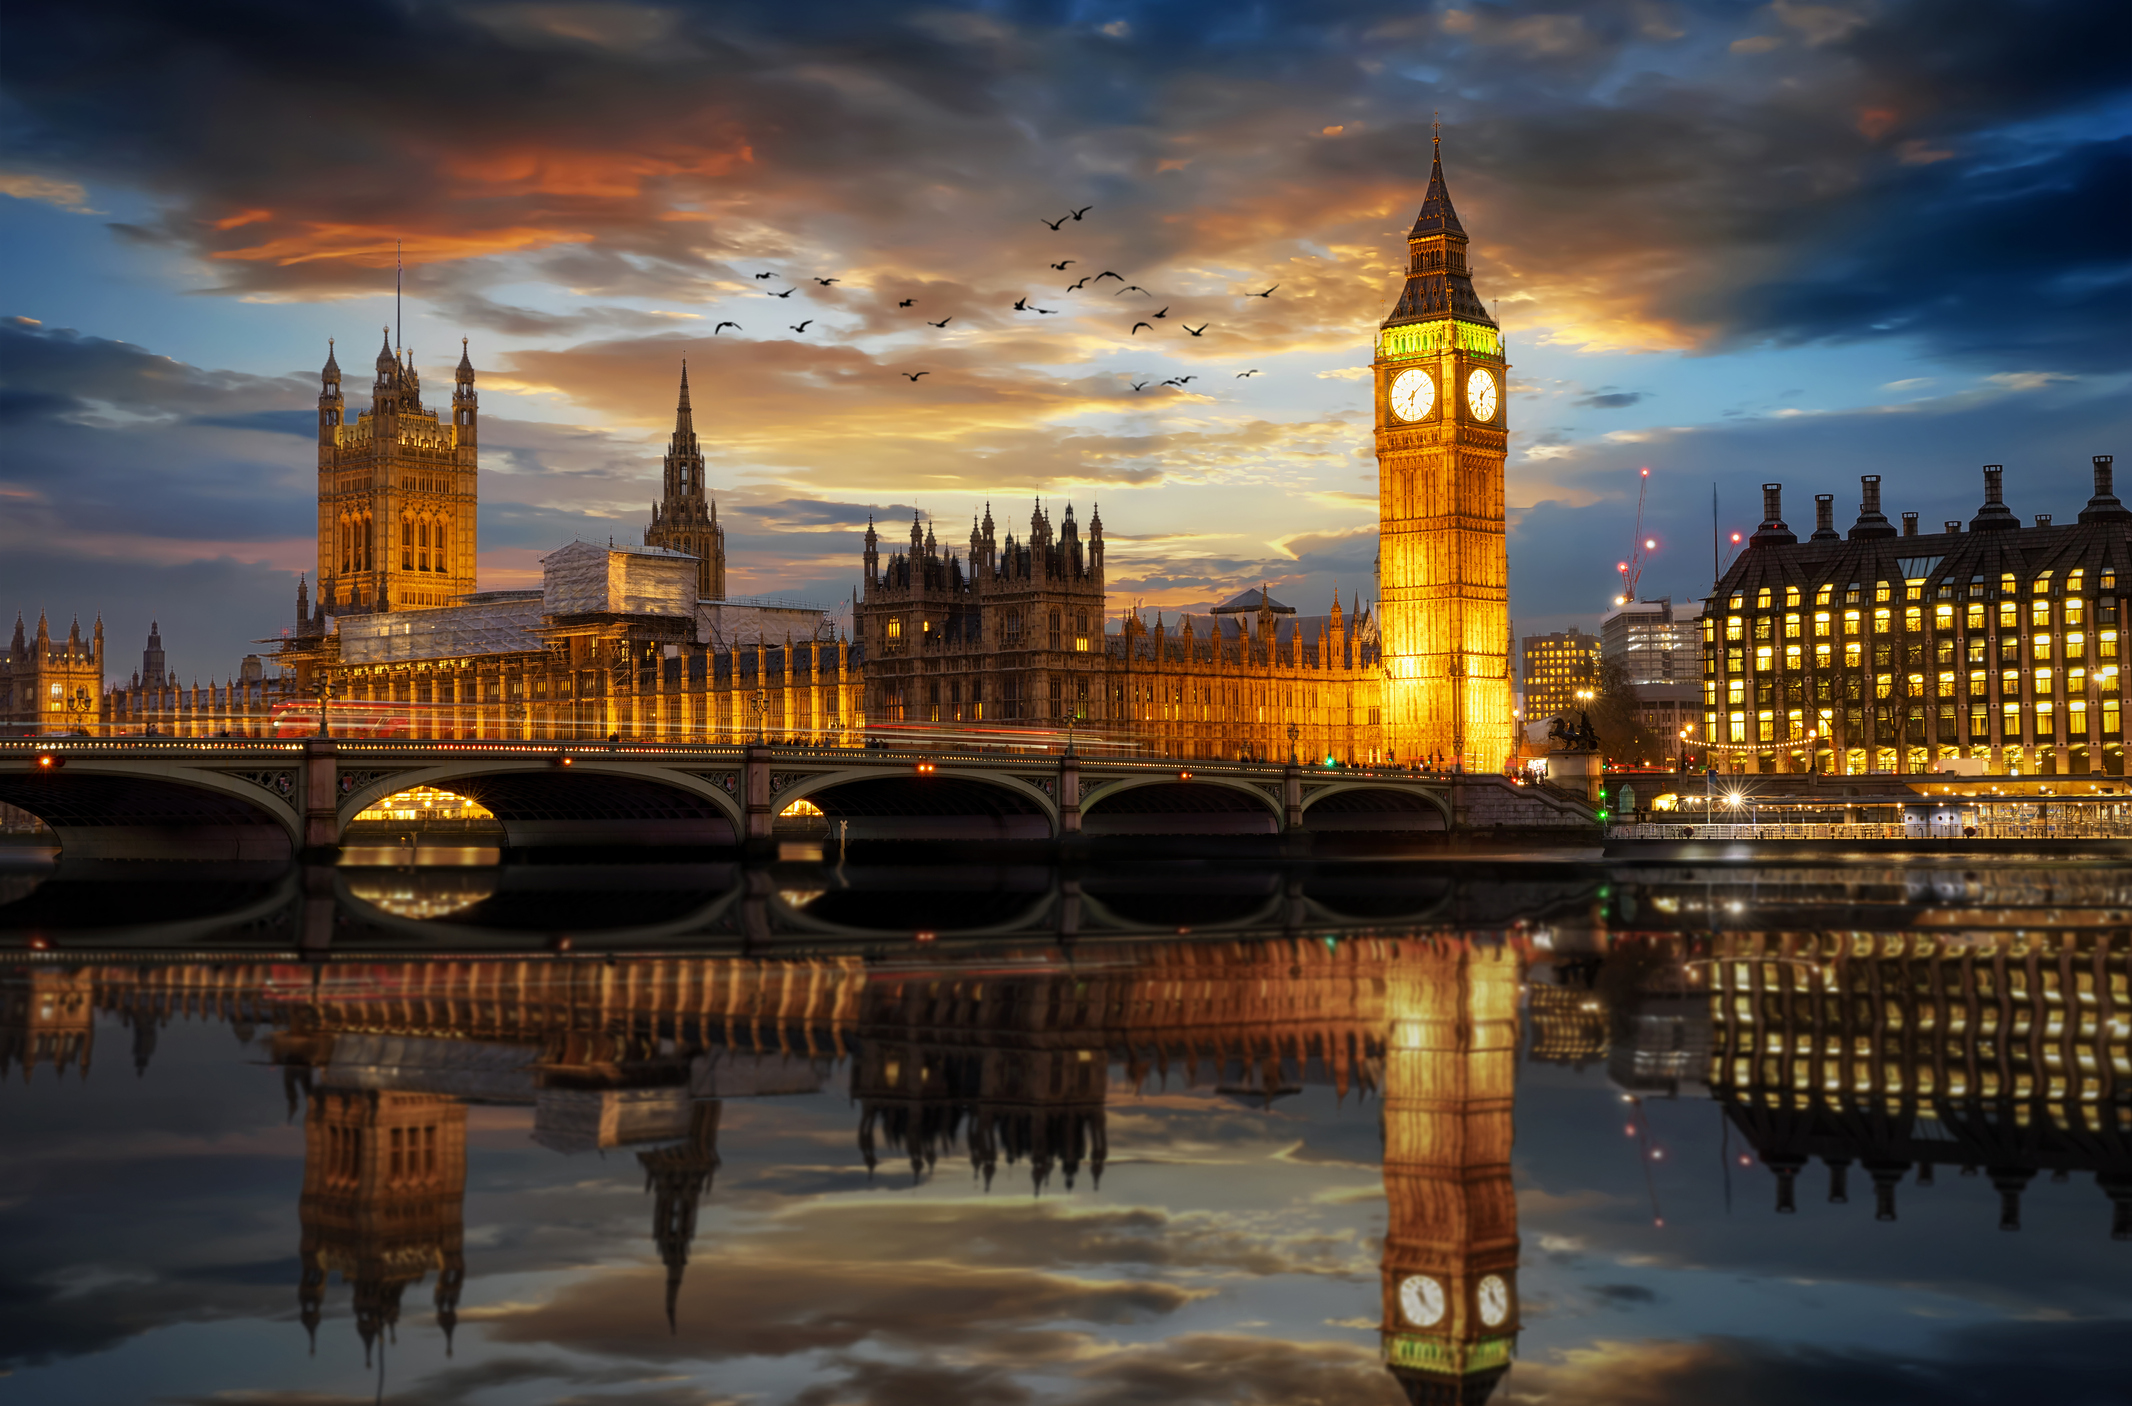 Westminster and Big Ben at sunset.